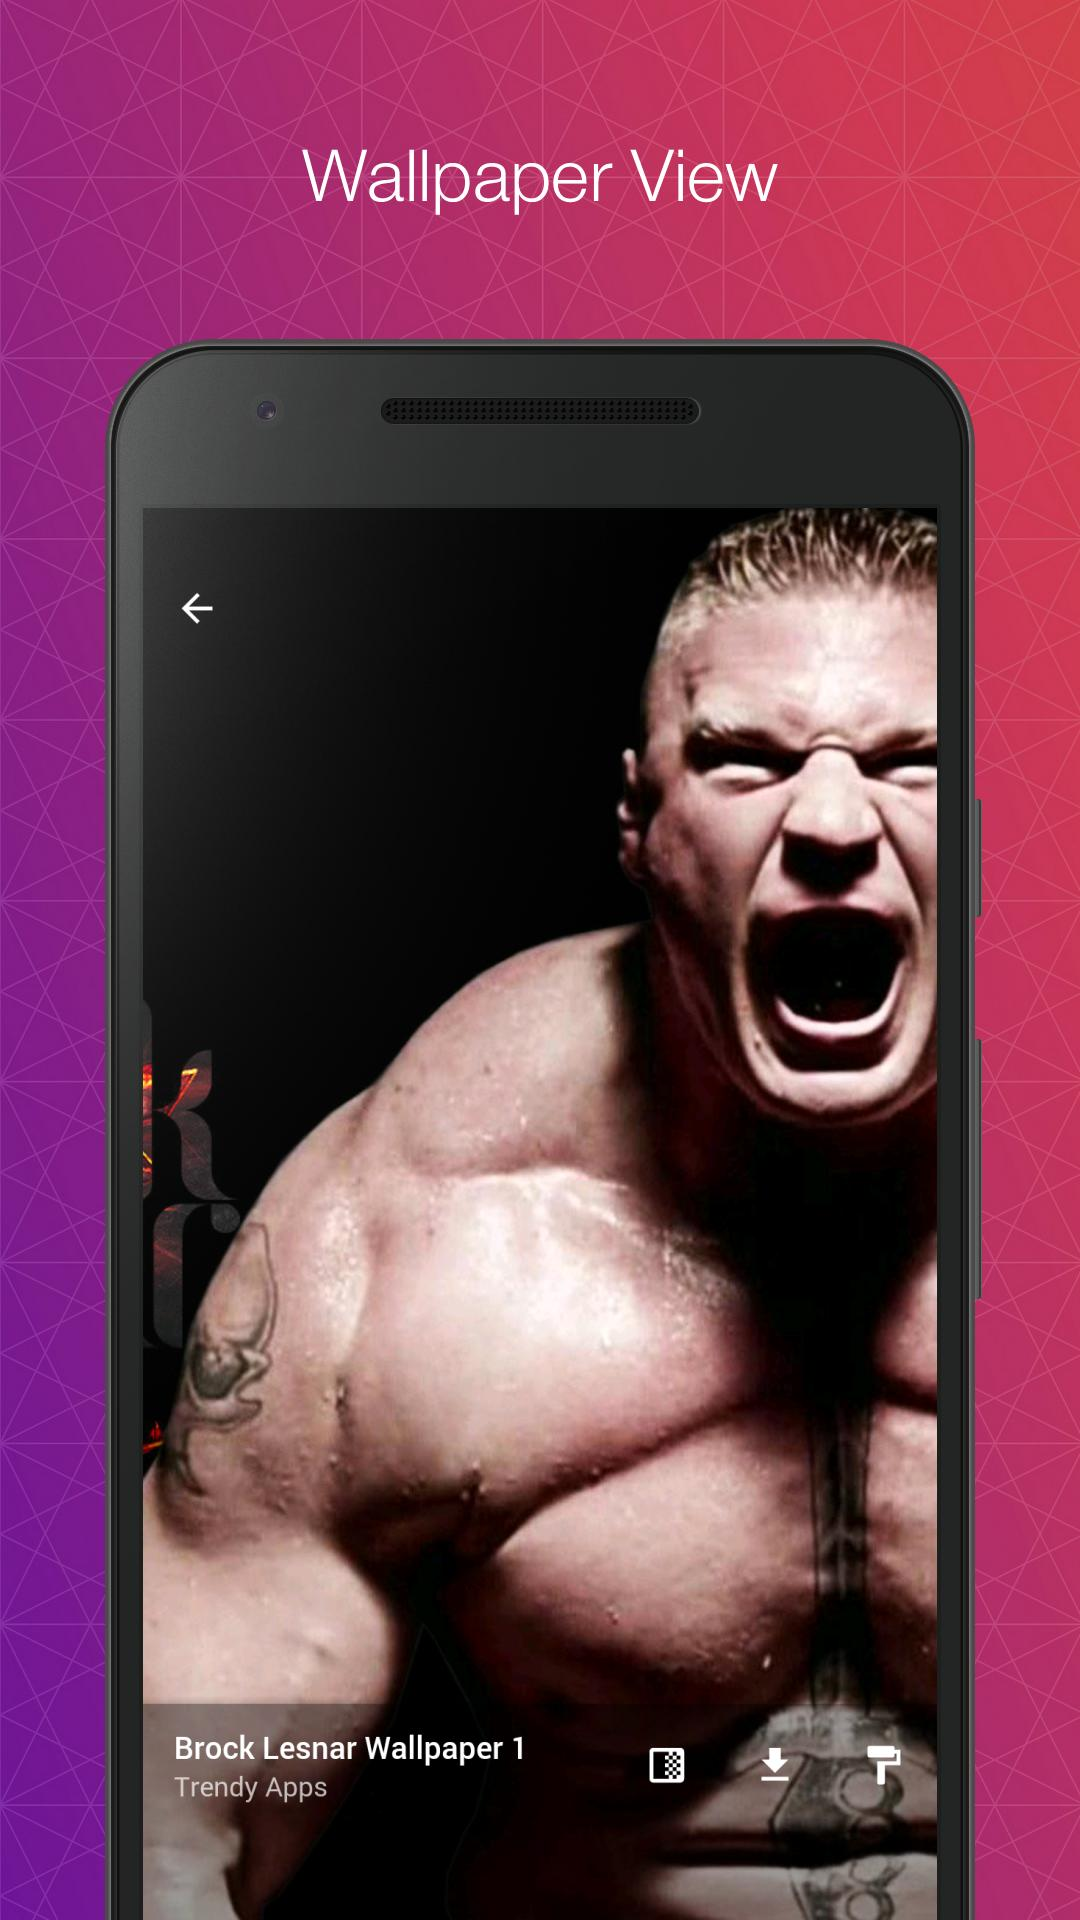 brock lesnar hd wallpapers backgrounds for android apk download brock lesnar hd wallpapers